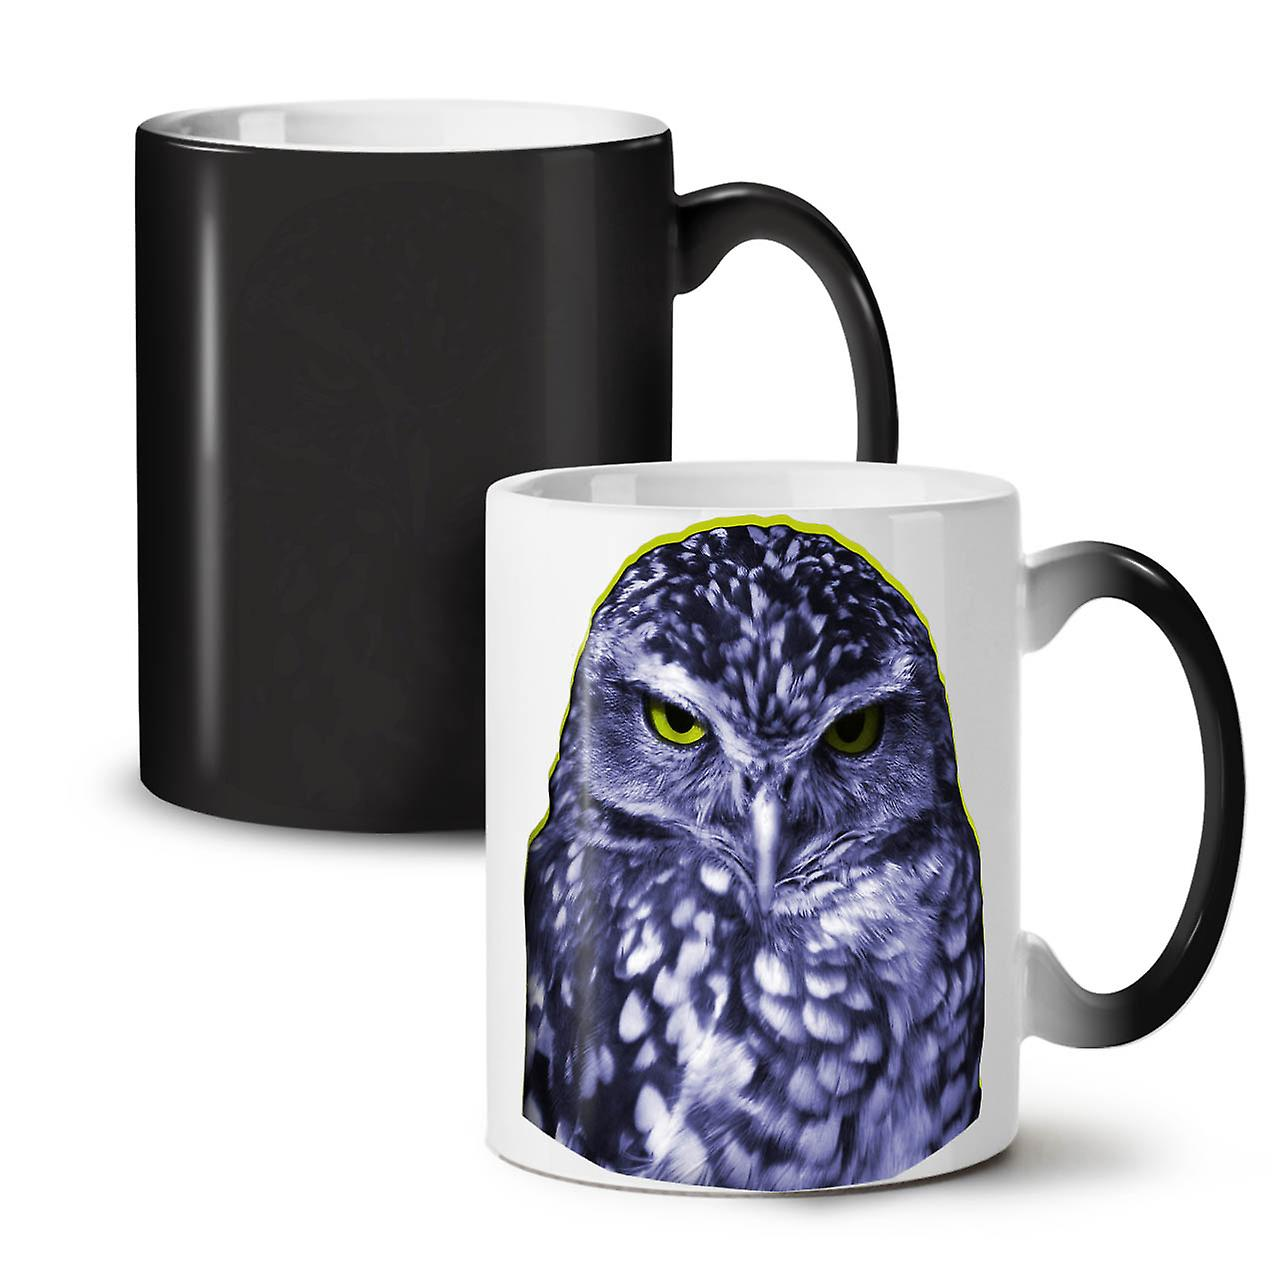 Owl Ceramic Mug Owl Dark Bird Wild Animal New Black Colour Changing Tea